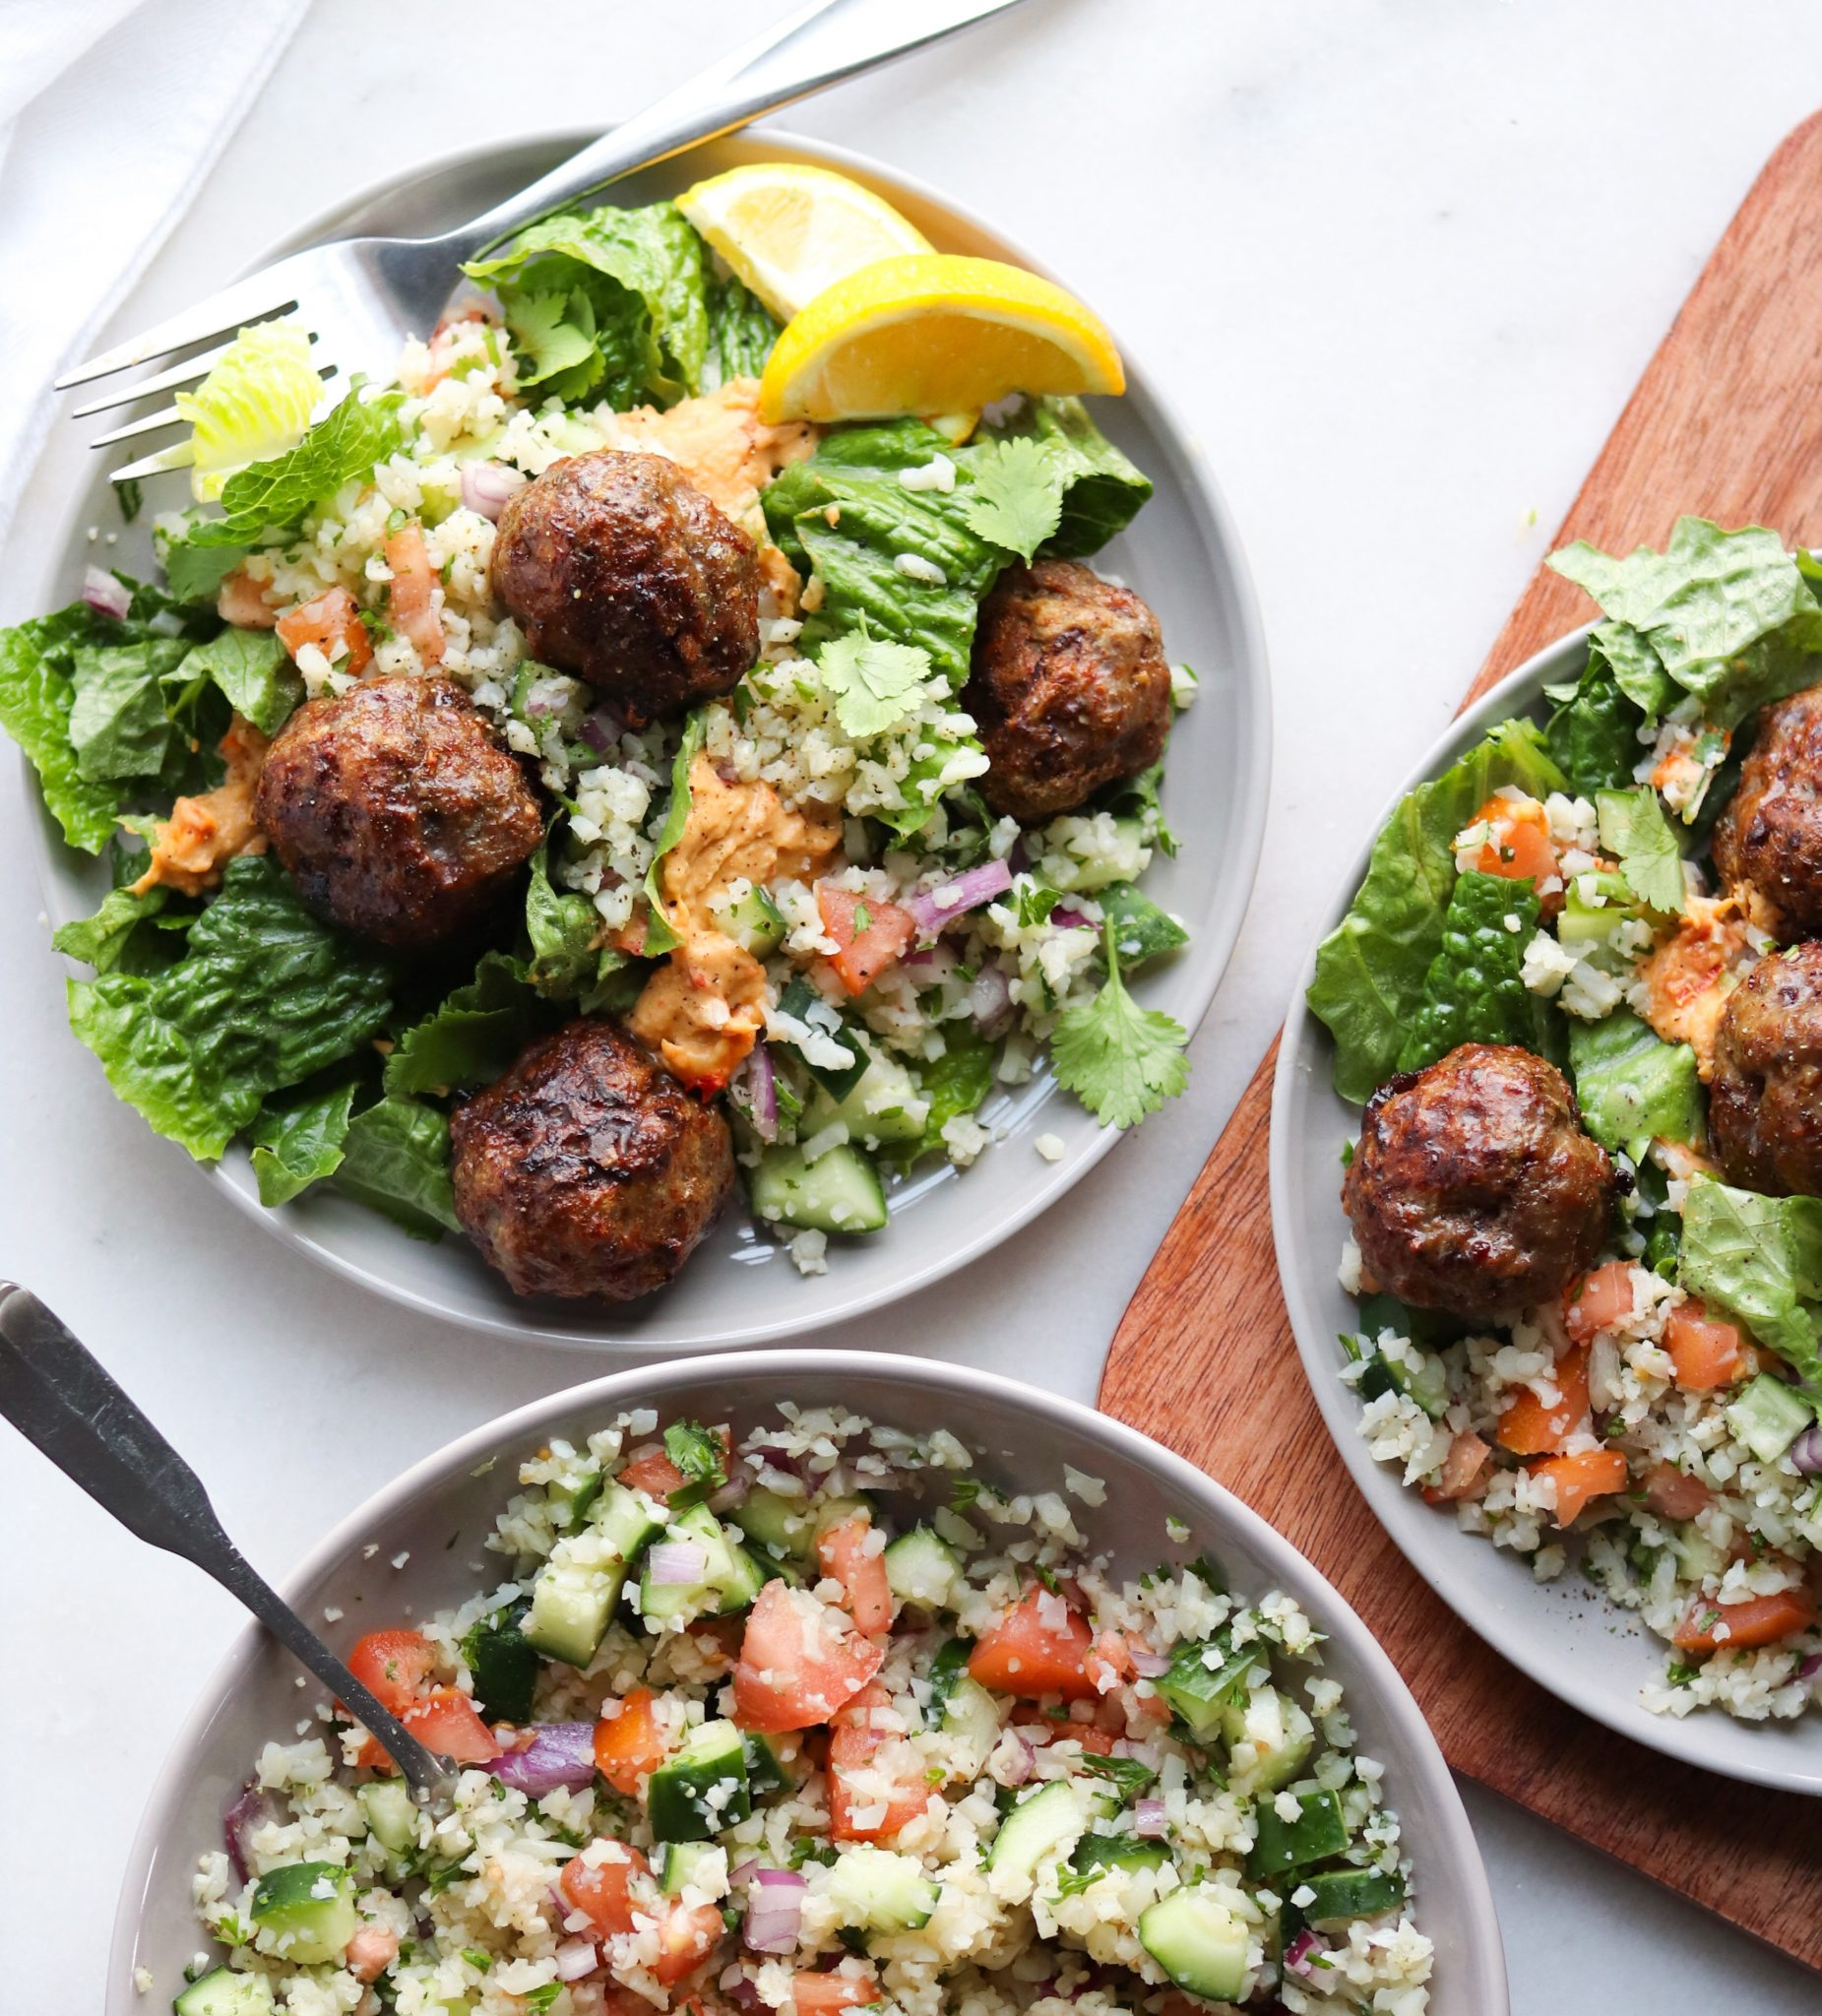 A bowl filled with lettuce, meatballs, red pepper hummus and cauliflower tabbouleh on a white board.